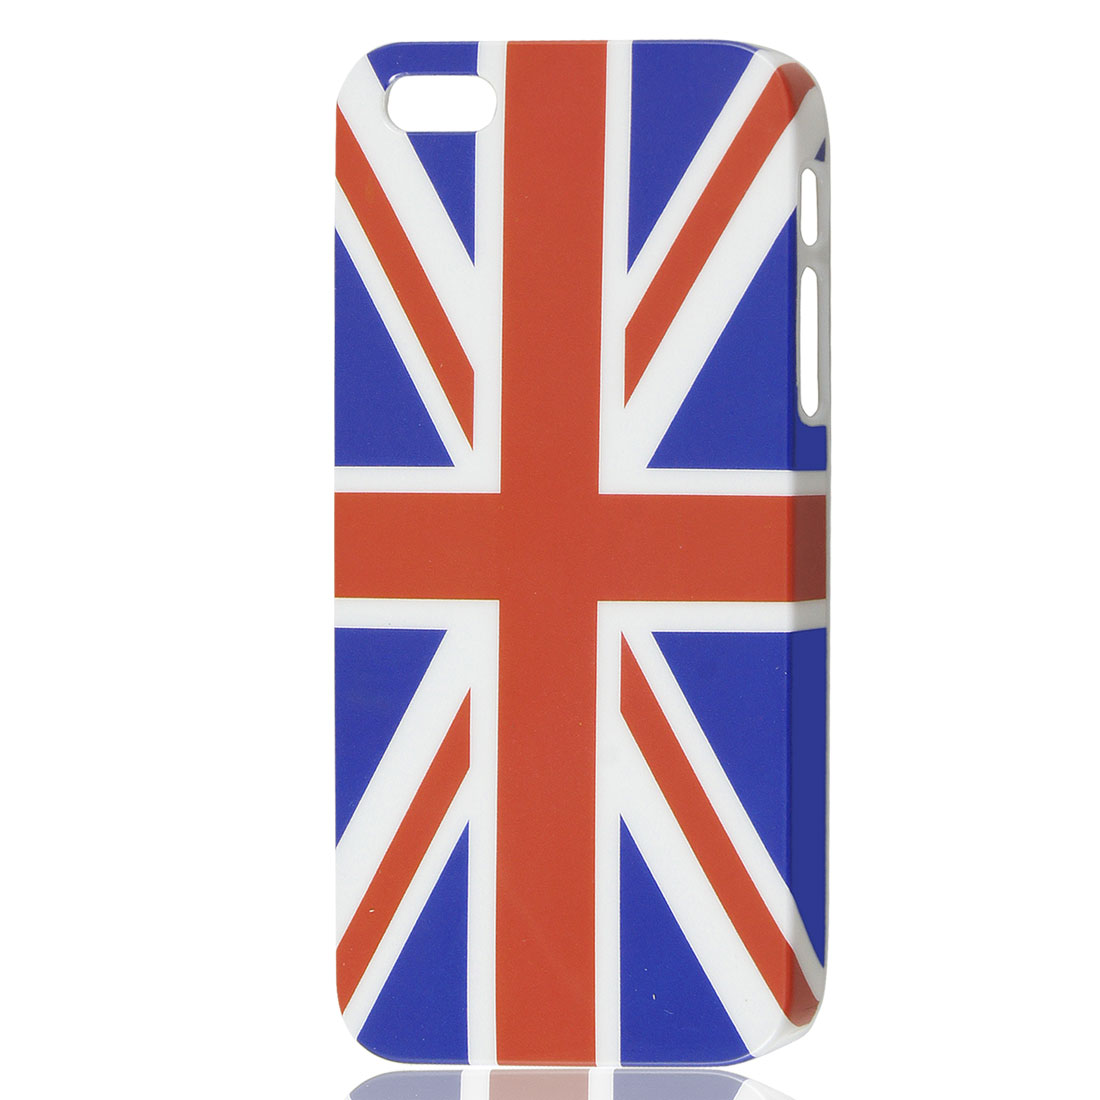 UK United Kingdom British Flag Pattern Hard Plastic Case Cover for iPhone 5 5G